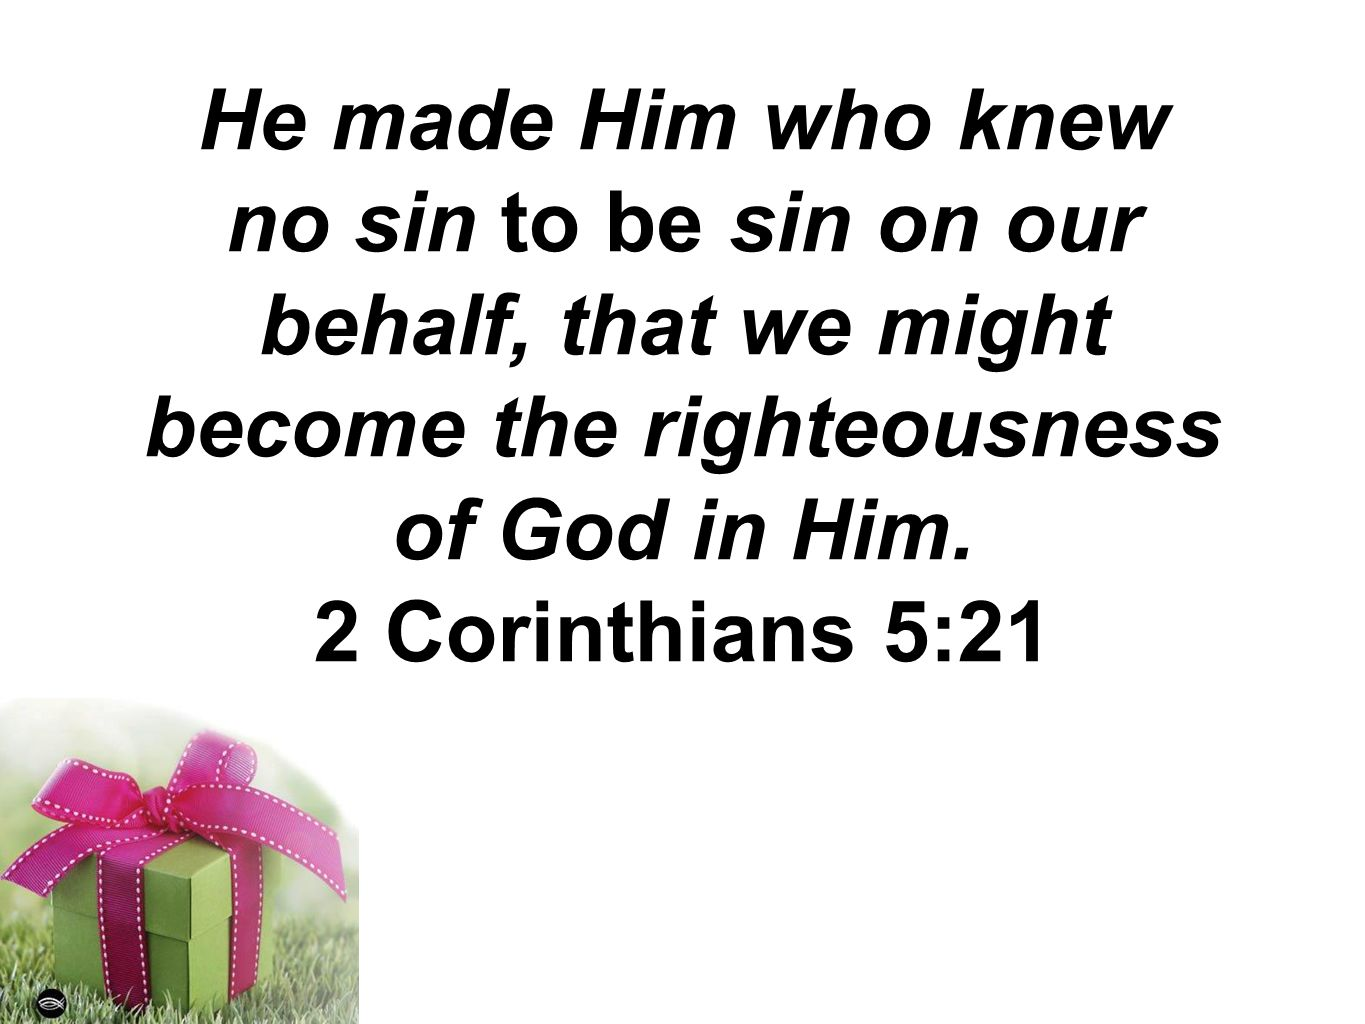 He made Him who knew no sin to be sin on our behalf, that we might become the righteousness of God in Him.